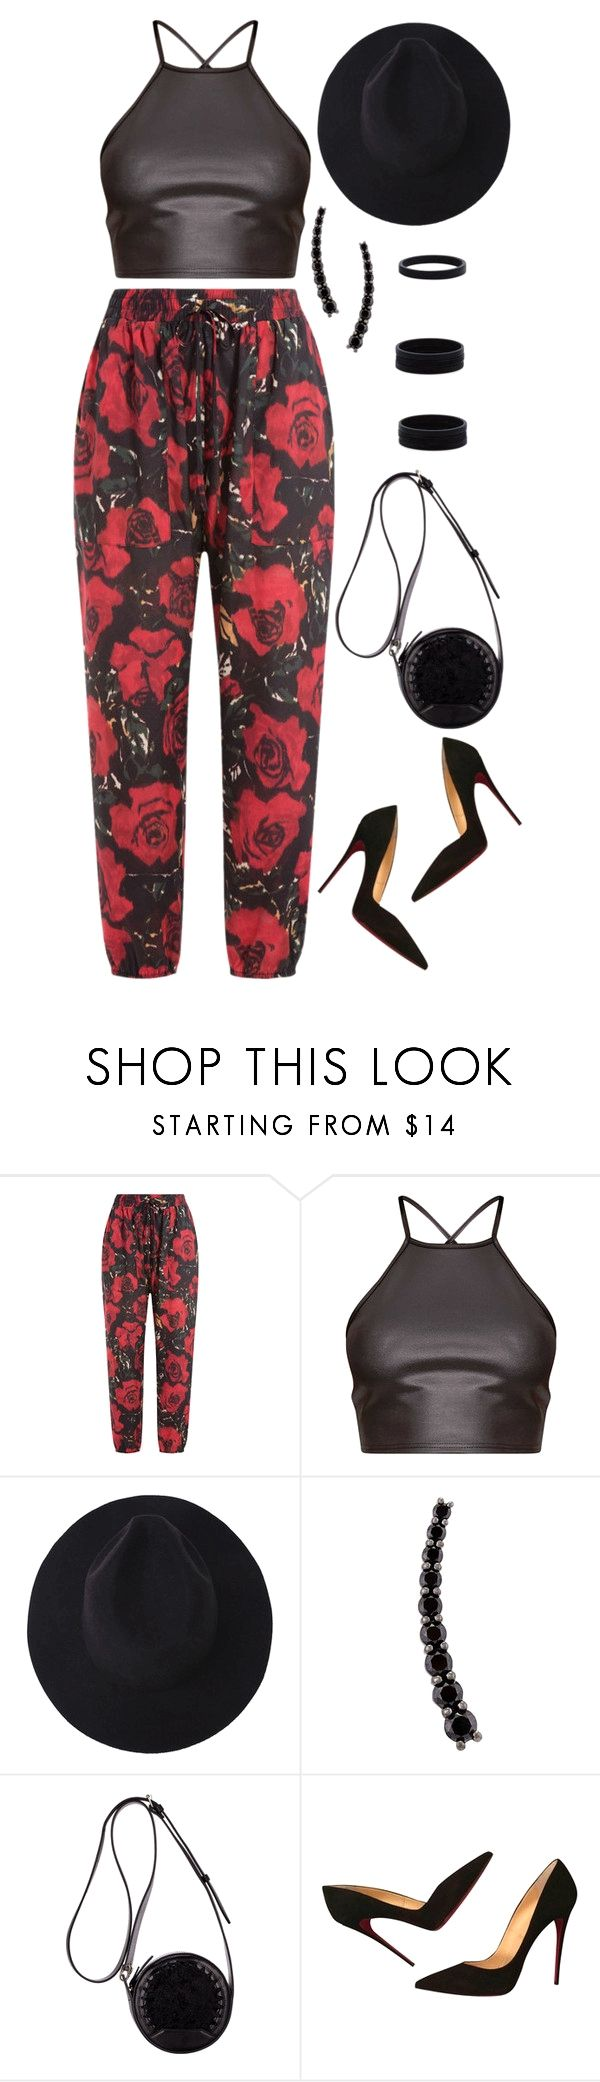 """1309"" by asoul4 on Polyvore featuring Anna Sui, Alinka, 31 Phillip Lim and Christian Louboutin on the lookout for limited offer,no tax and free shipping.#shoes #womenstyle #heels #womenheels #womenshoes  #fashionheels #redheels #louboutin #louboutinheels #christanlouboutinshoes #louboutinworld"